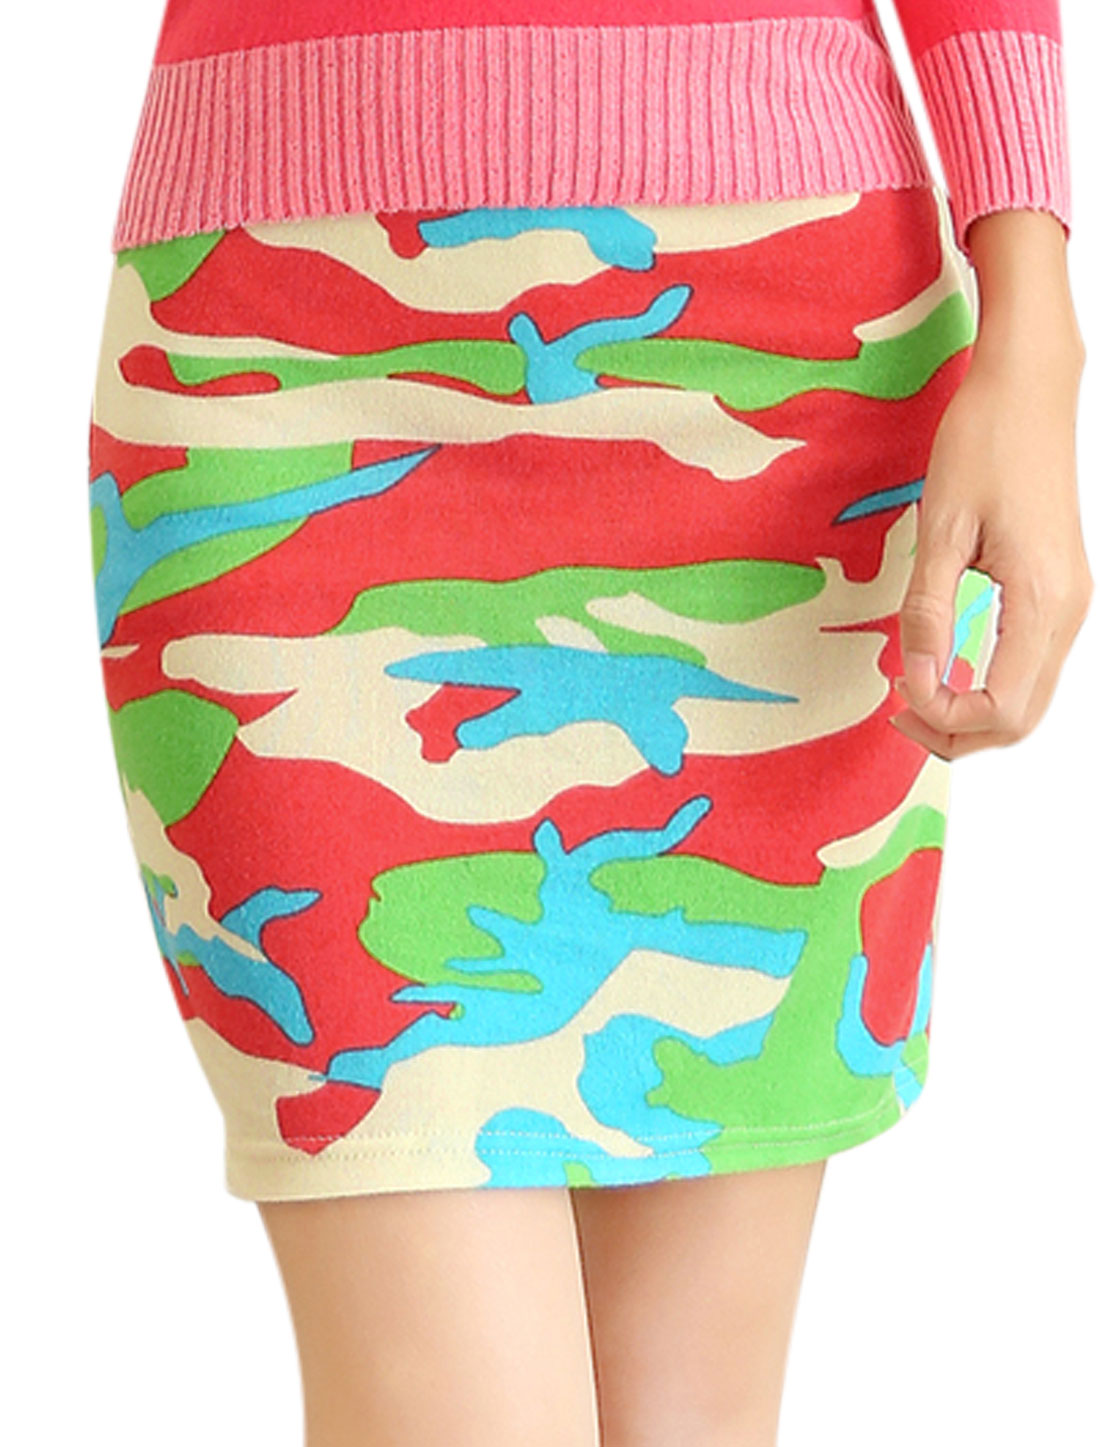 Women Allover Cloud Print Over Hip Design Fashion Mini Skirt Green Coral XS